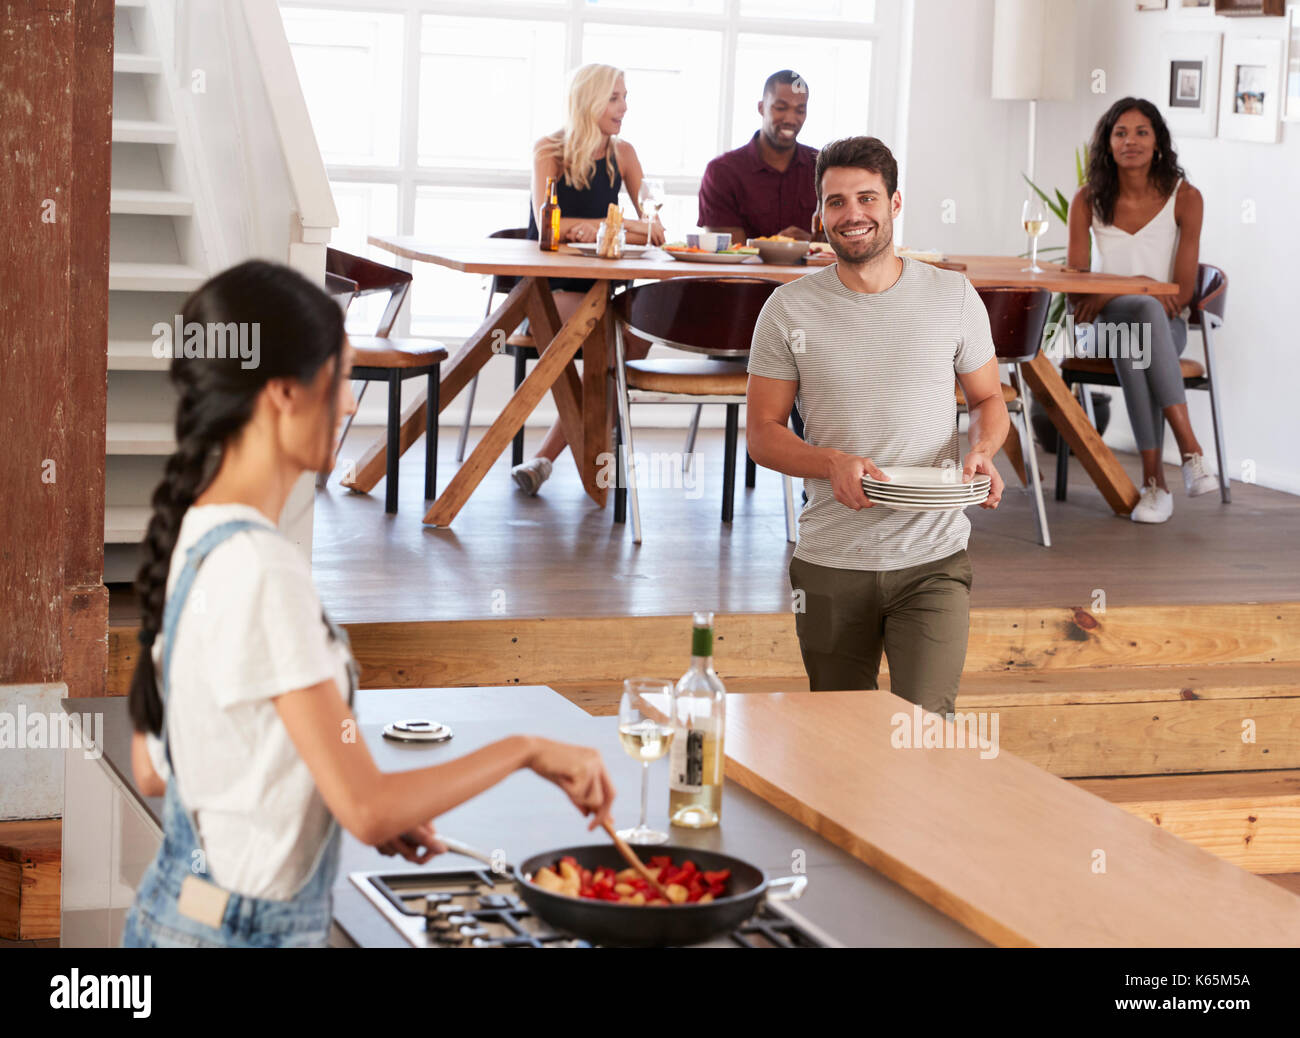 Women Preparing Table Dinner Party Stock Photos Women